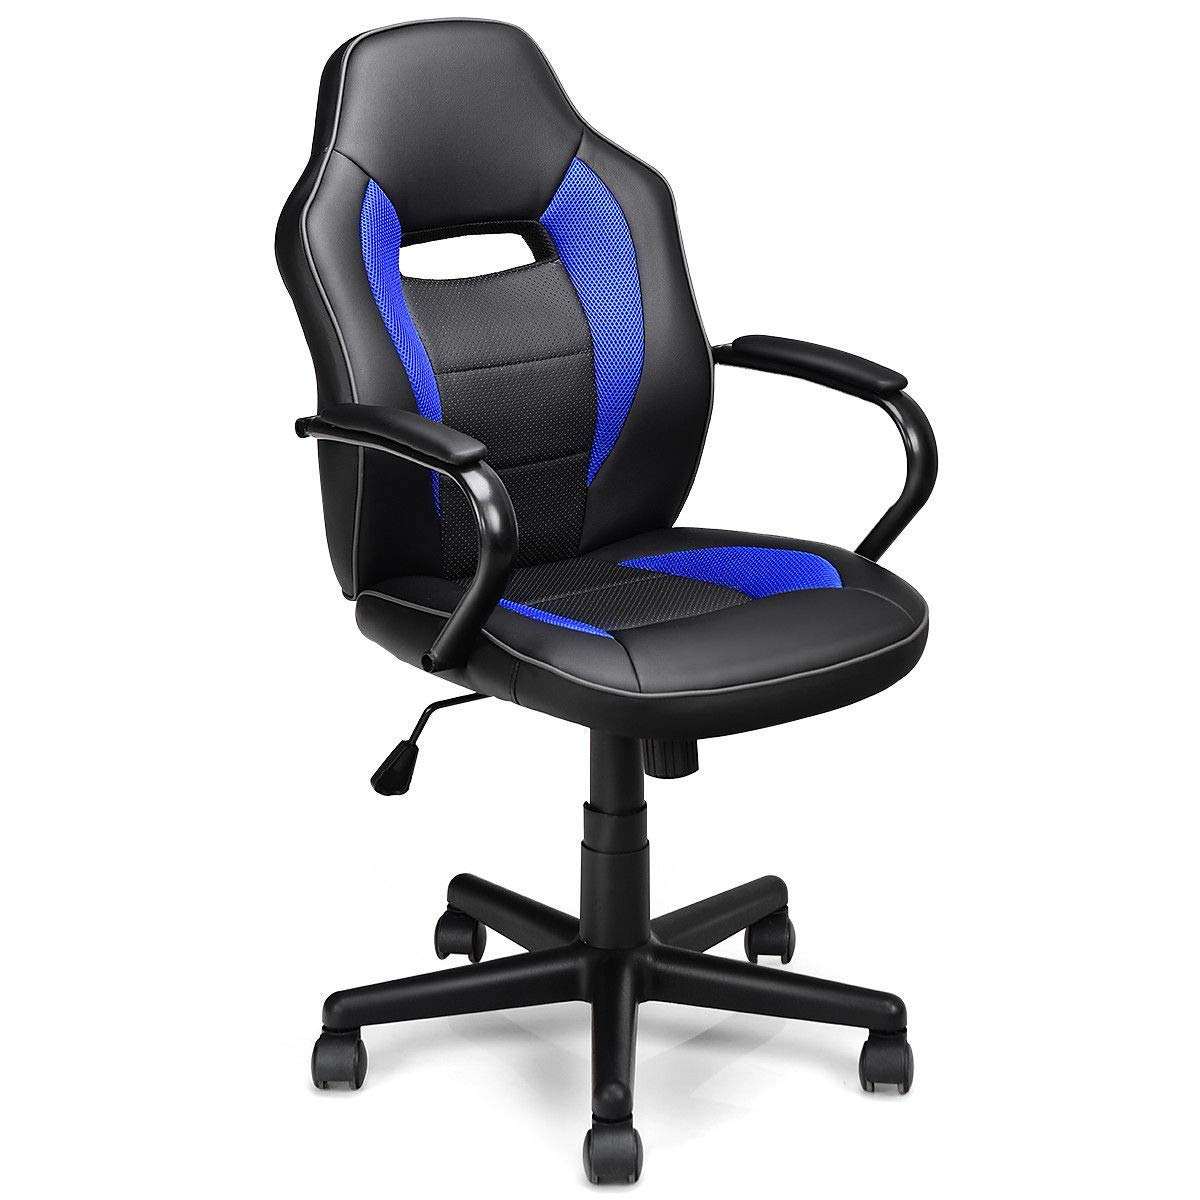 Giantex Mid-Back Office Chair, PU Leather with Breathable Cushion Computer Desk Task Chair, Racing Style Gaming Chair (Navy) by Giantex